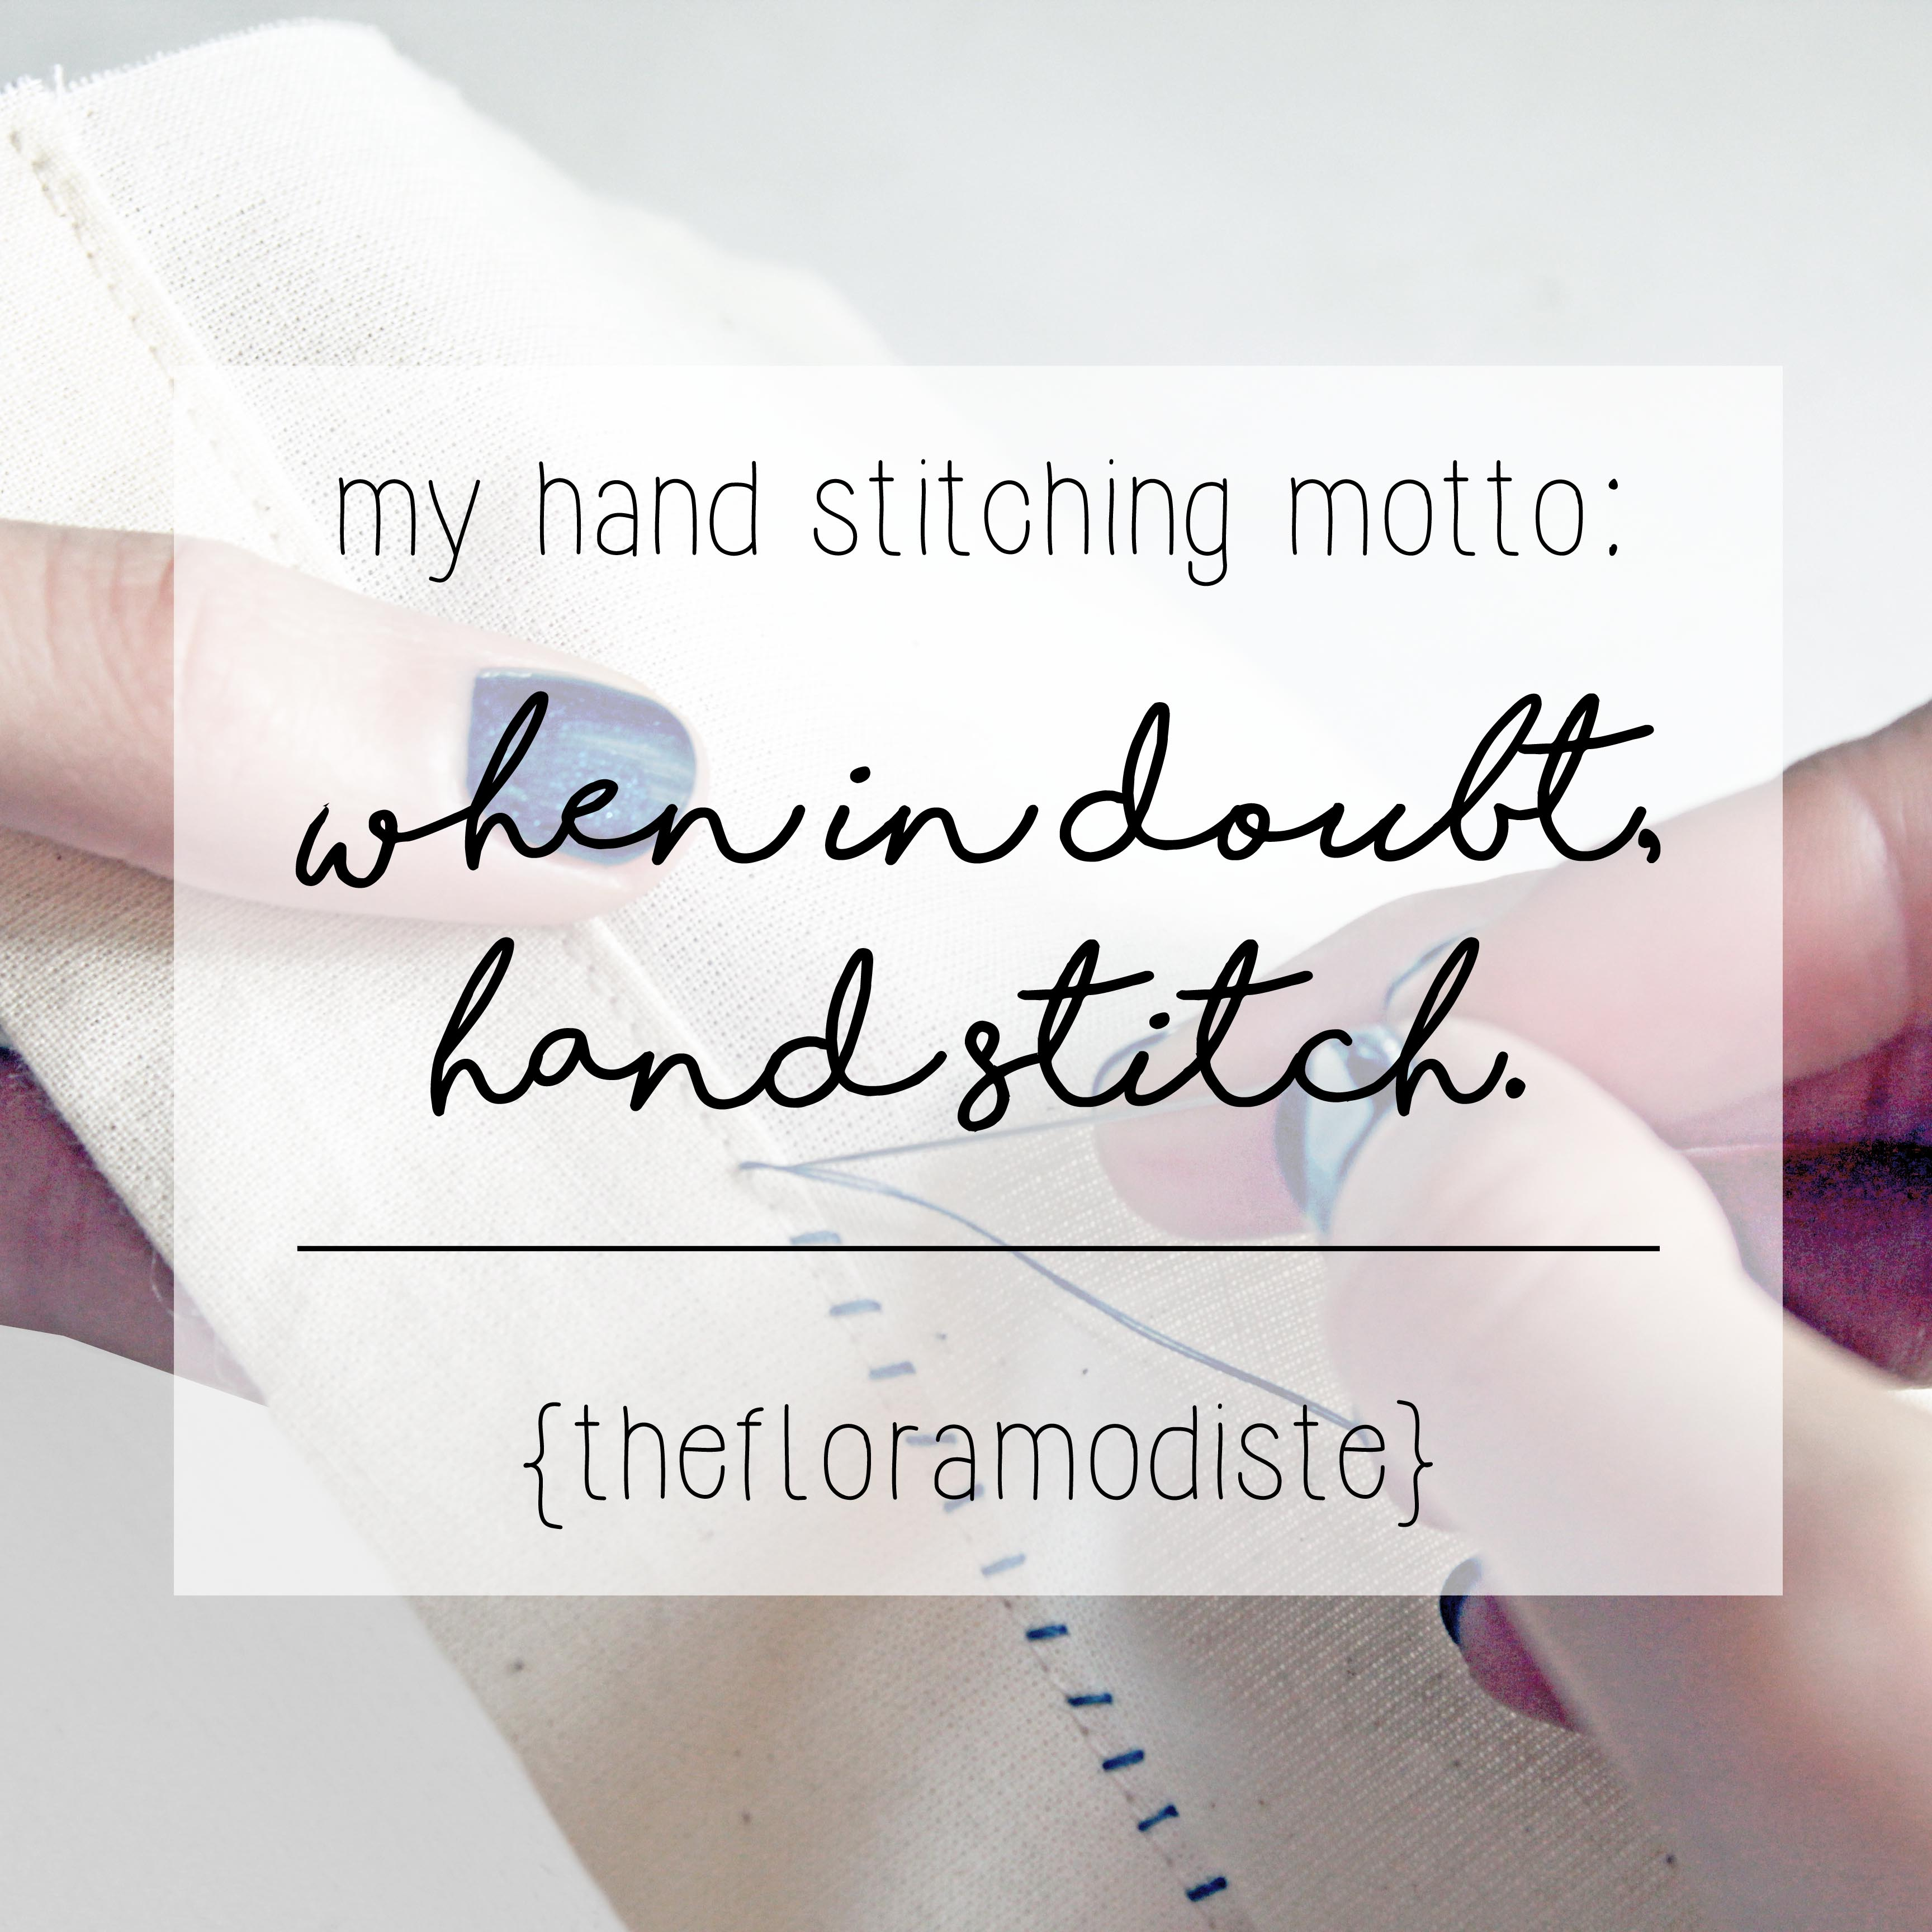 Different types of hand stitches motto